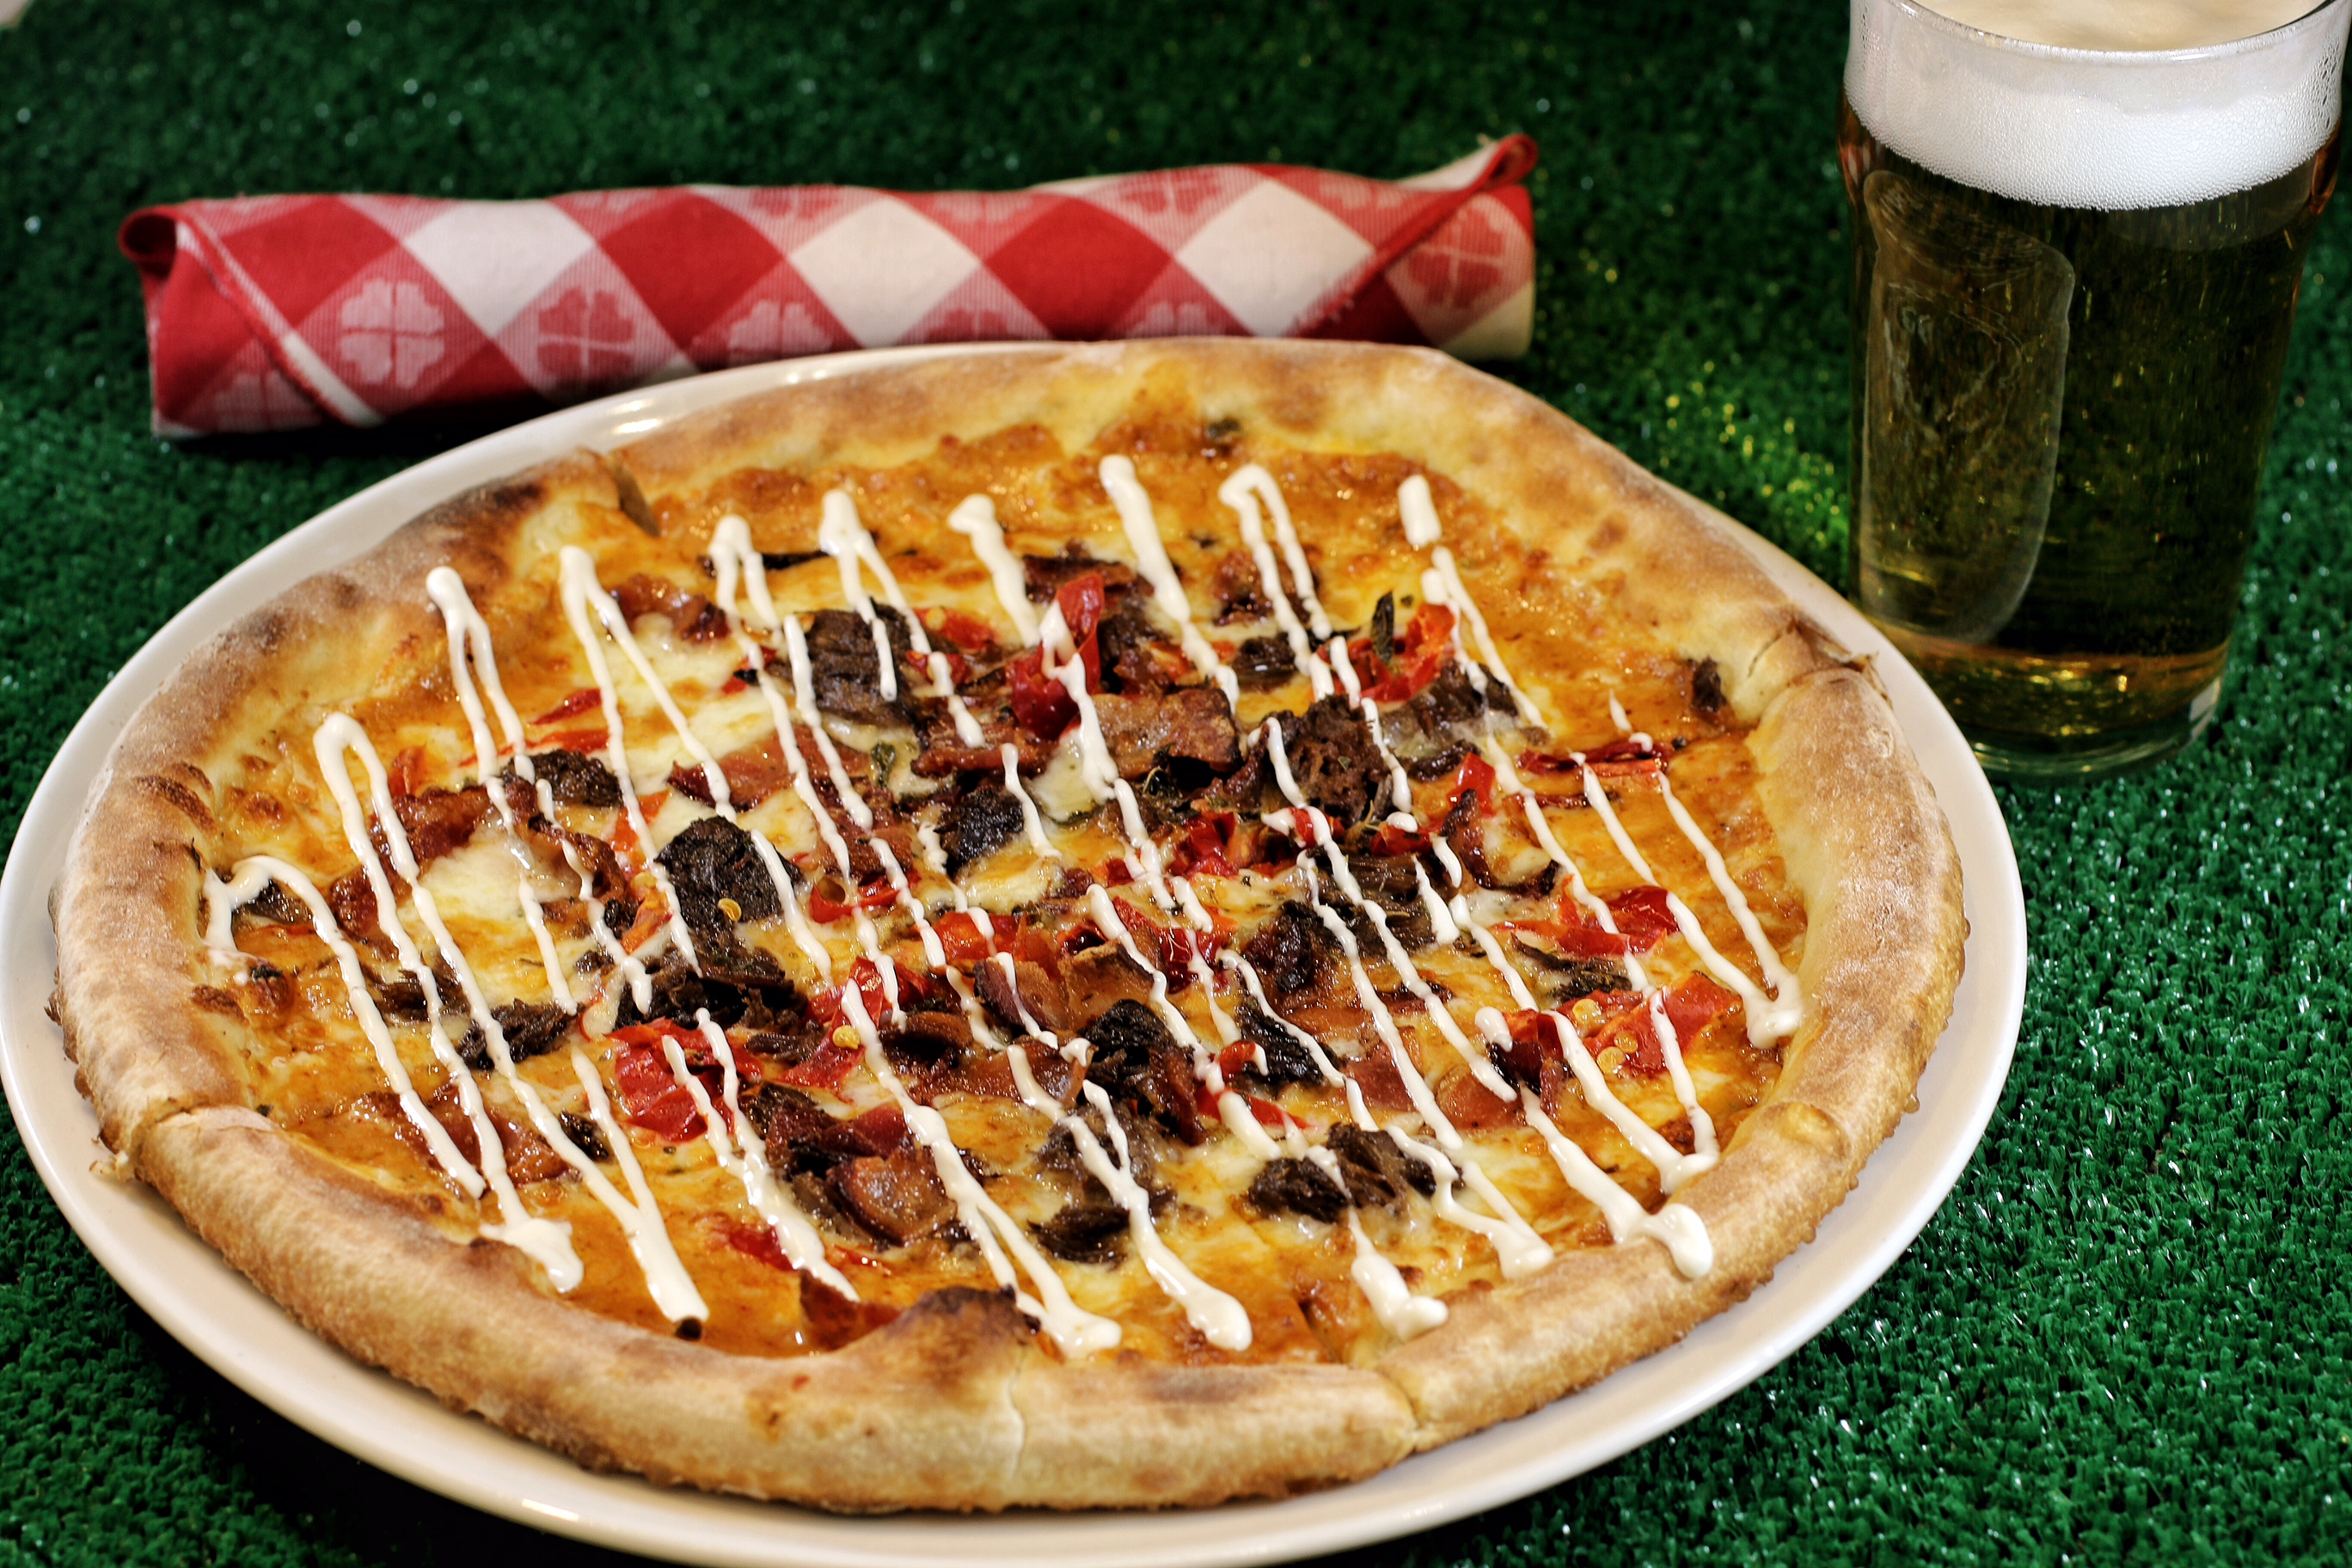 The Carolina Smokehouse Pizza, photo courtesy of Flour & Barley.